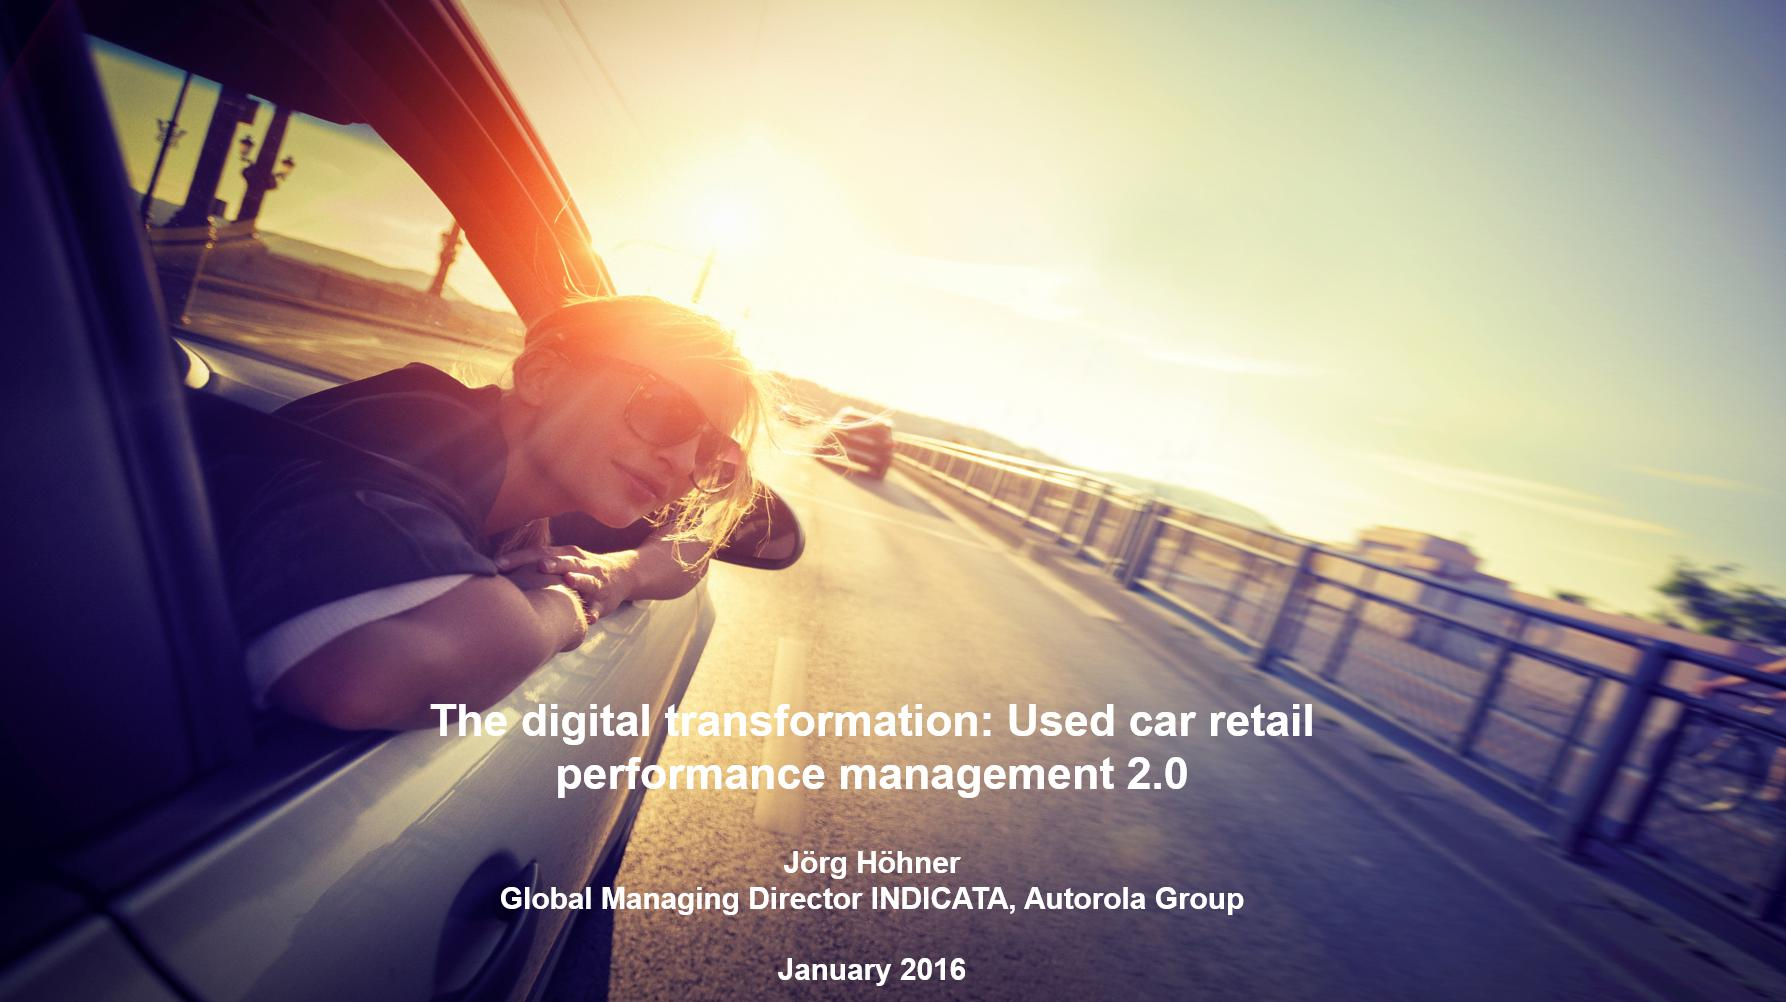 The digital transformation: Used car retail performance management 2.0